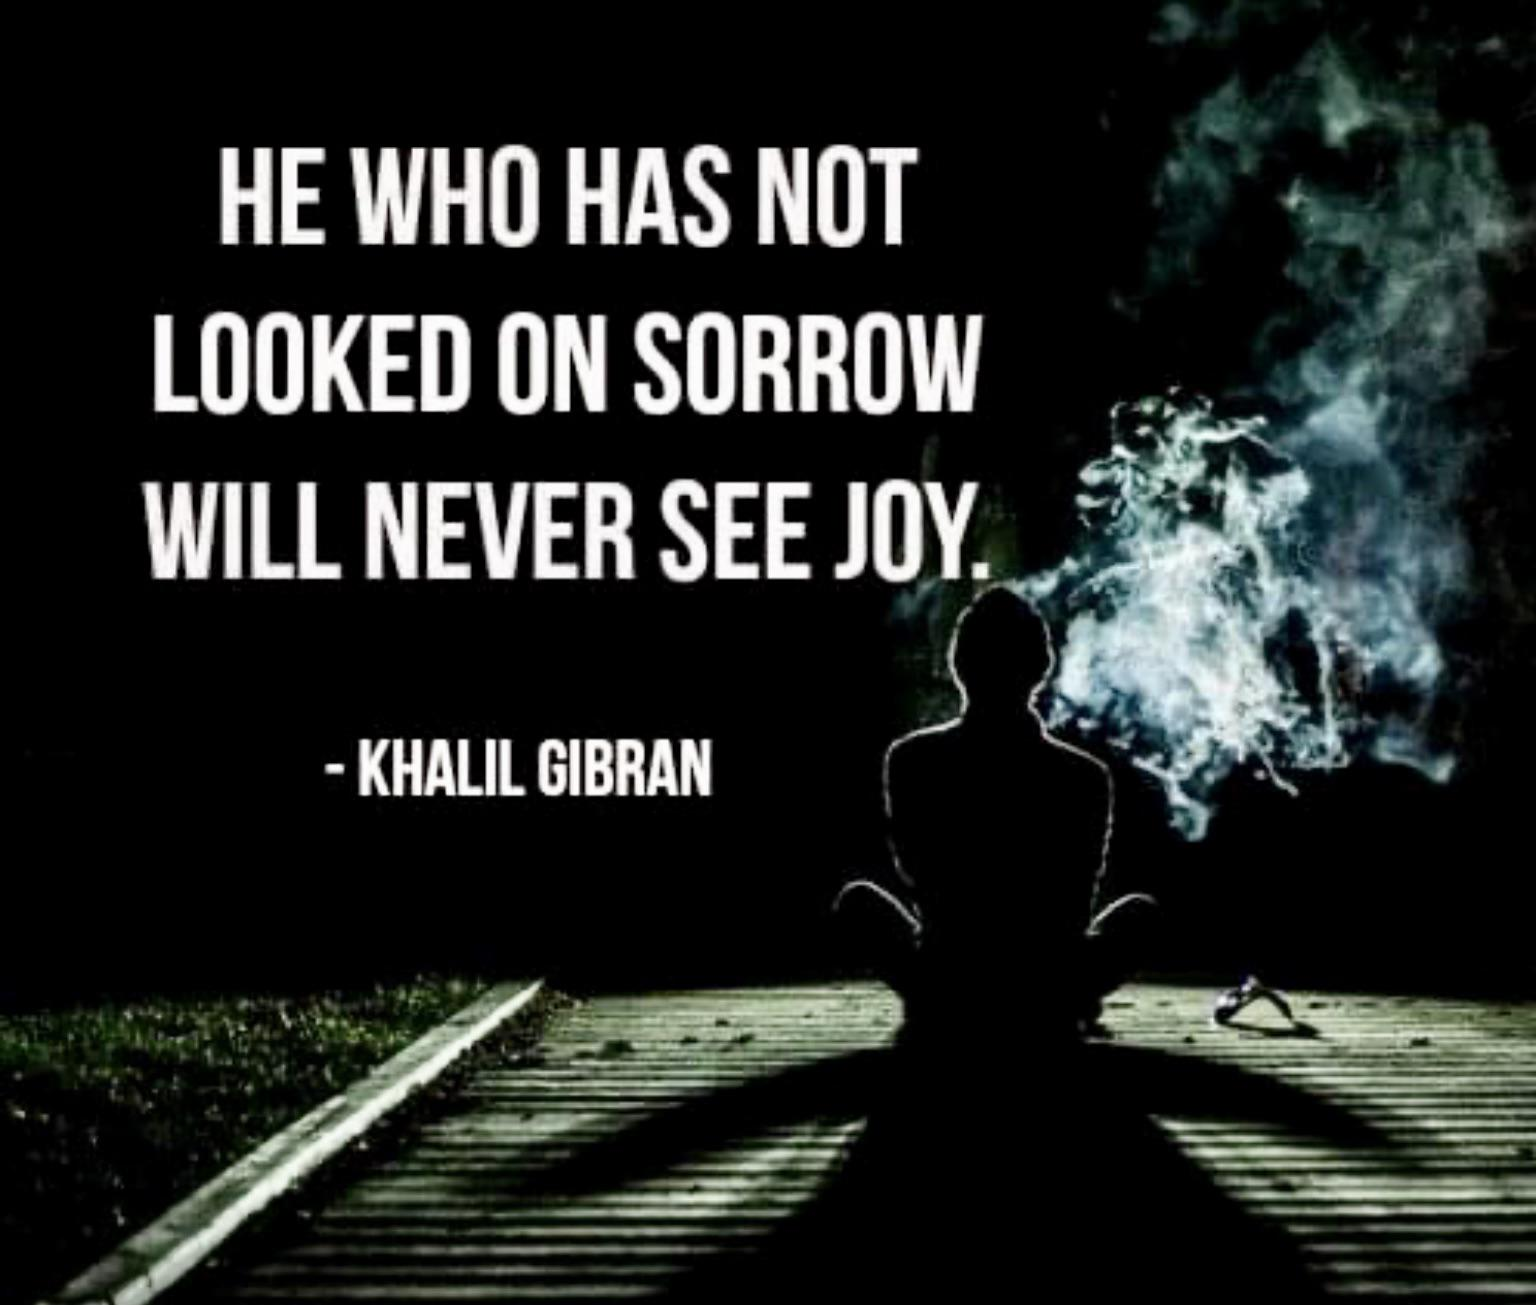 He who has not looked on sorrow. ~Khalil Gibran [1536 X 1310]